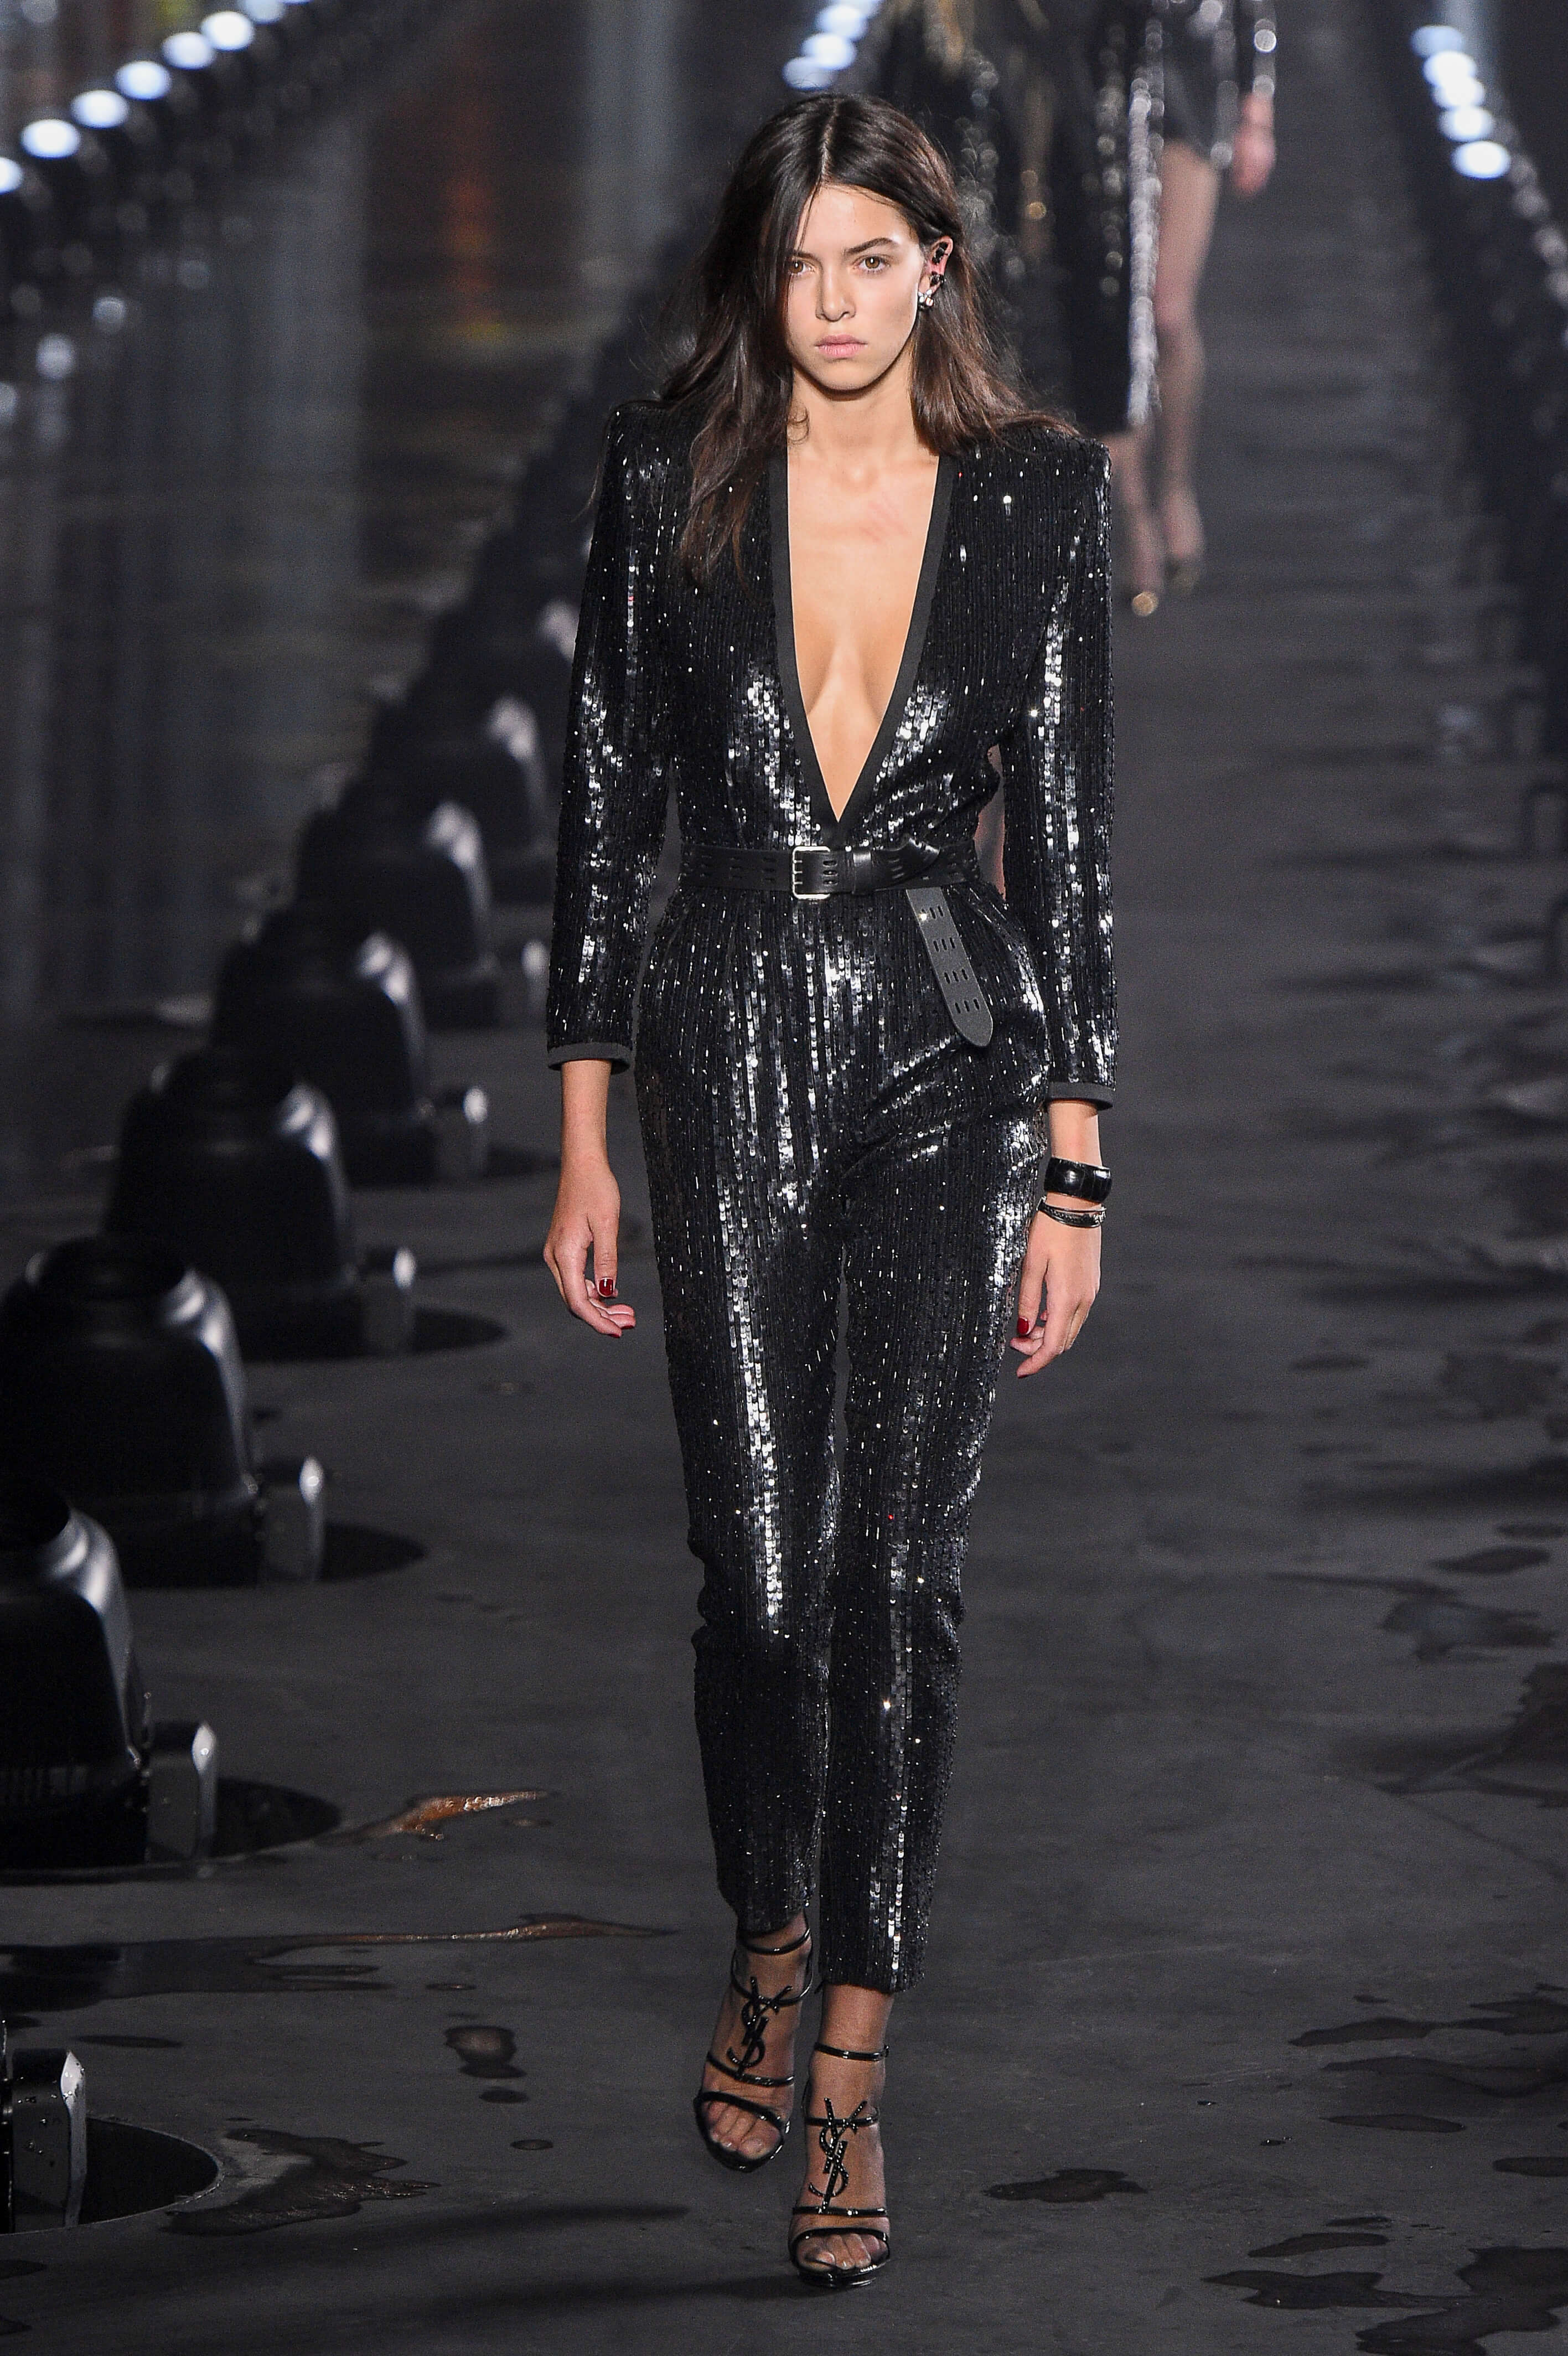 saint_laurent_wss20_123